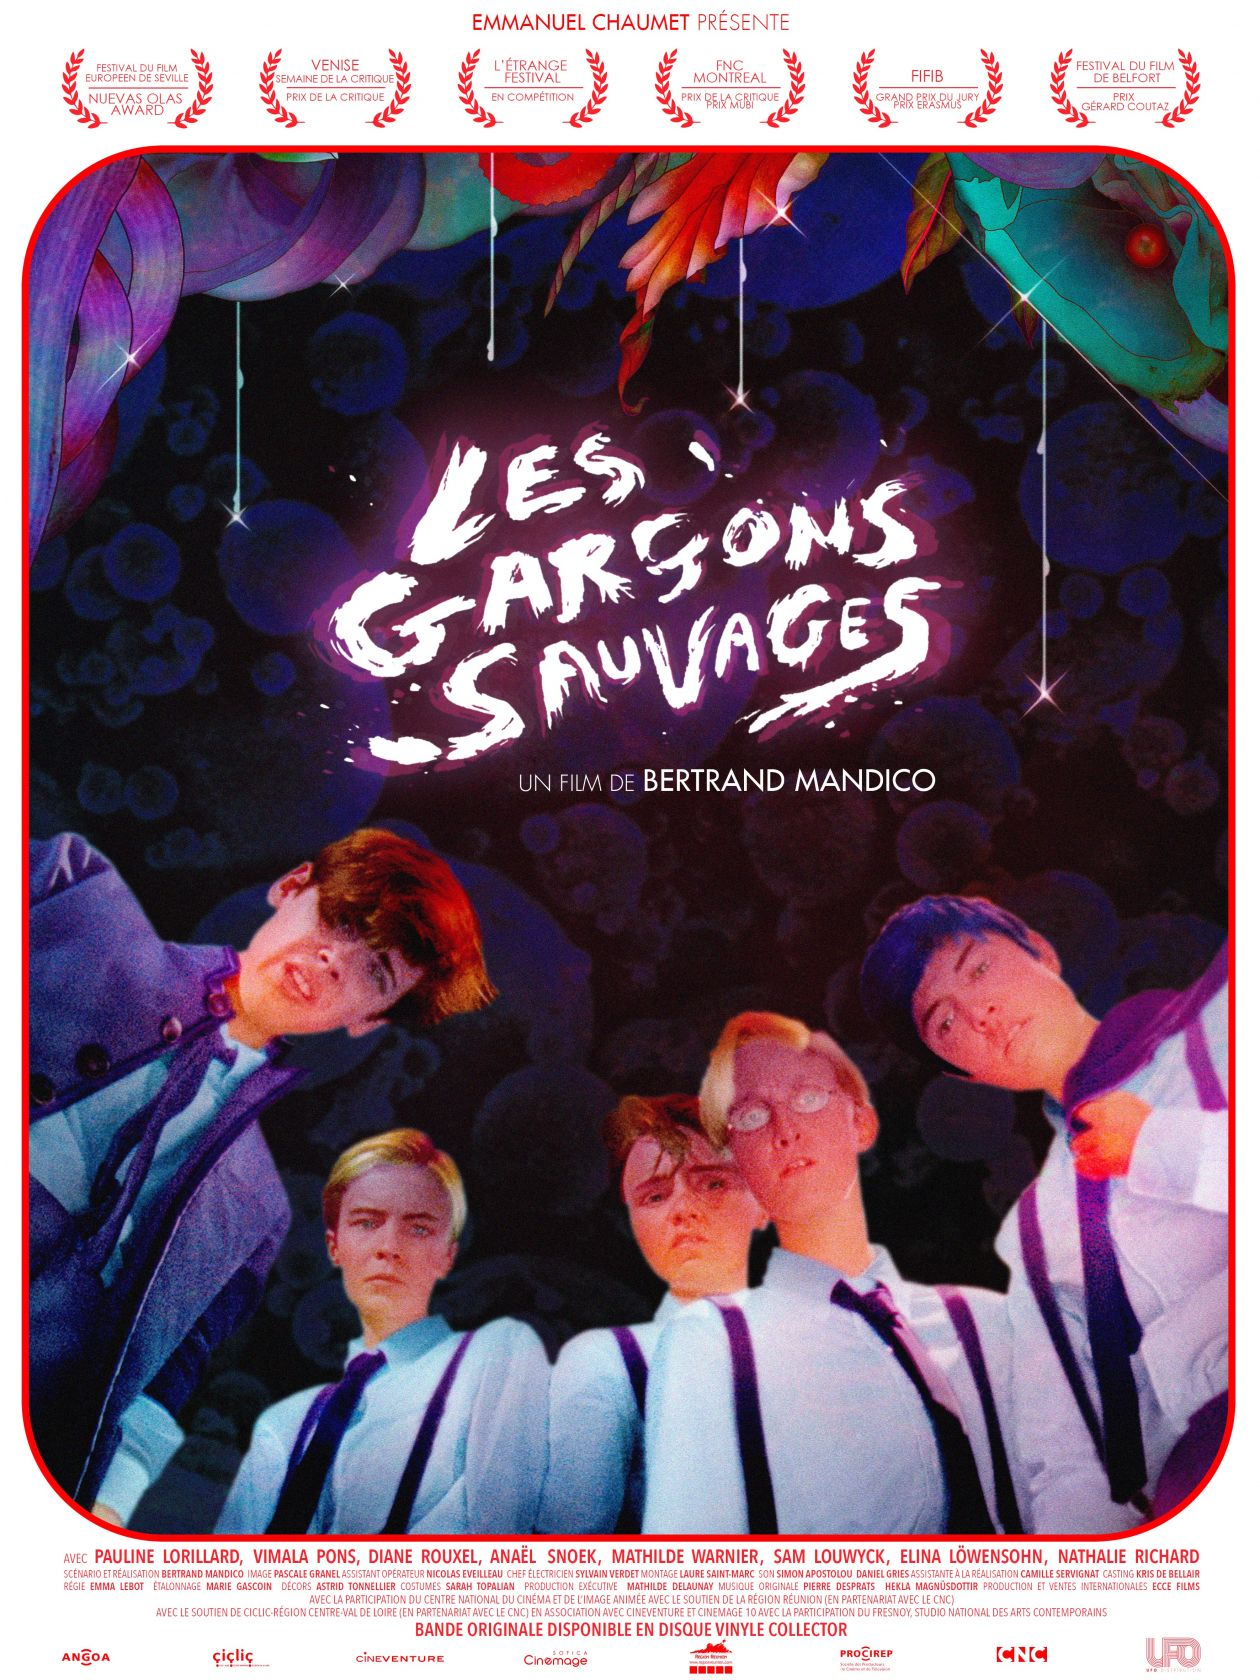 Les Garçons sauvages / The Wild Boys | Bertrand Mandico /  Pauline Lorillard, Vimala Pons, Diane Rouxel, Anaël Snoek, Mathilde Warnier actresses / 2018 Movie Poster / Affiche film